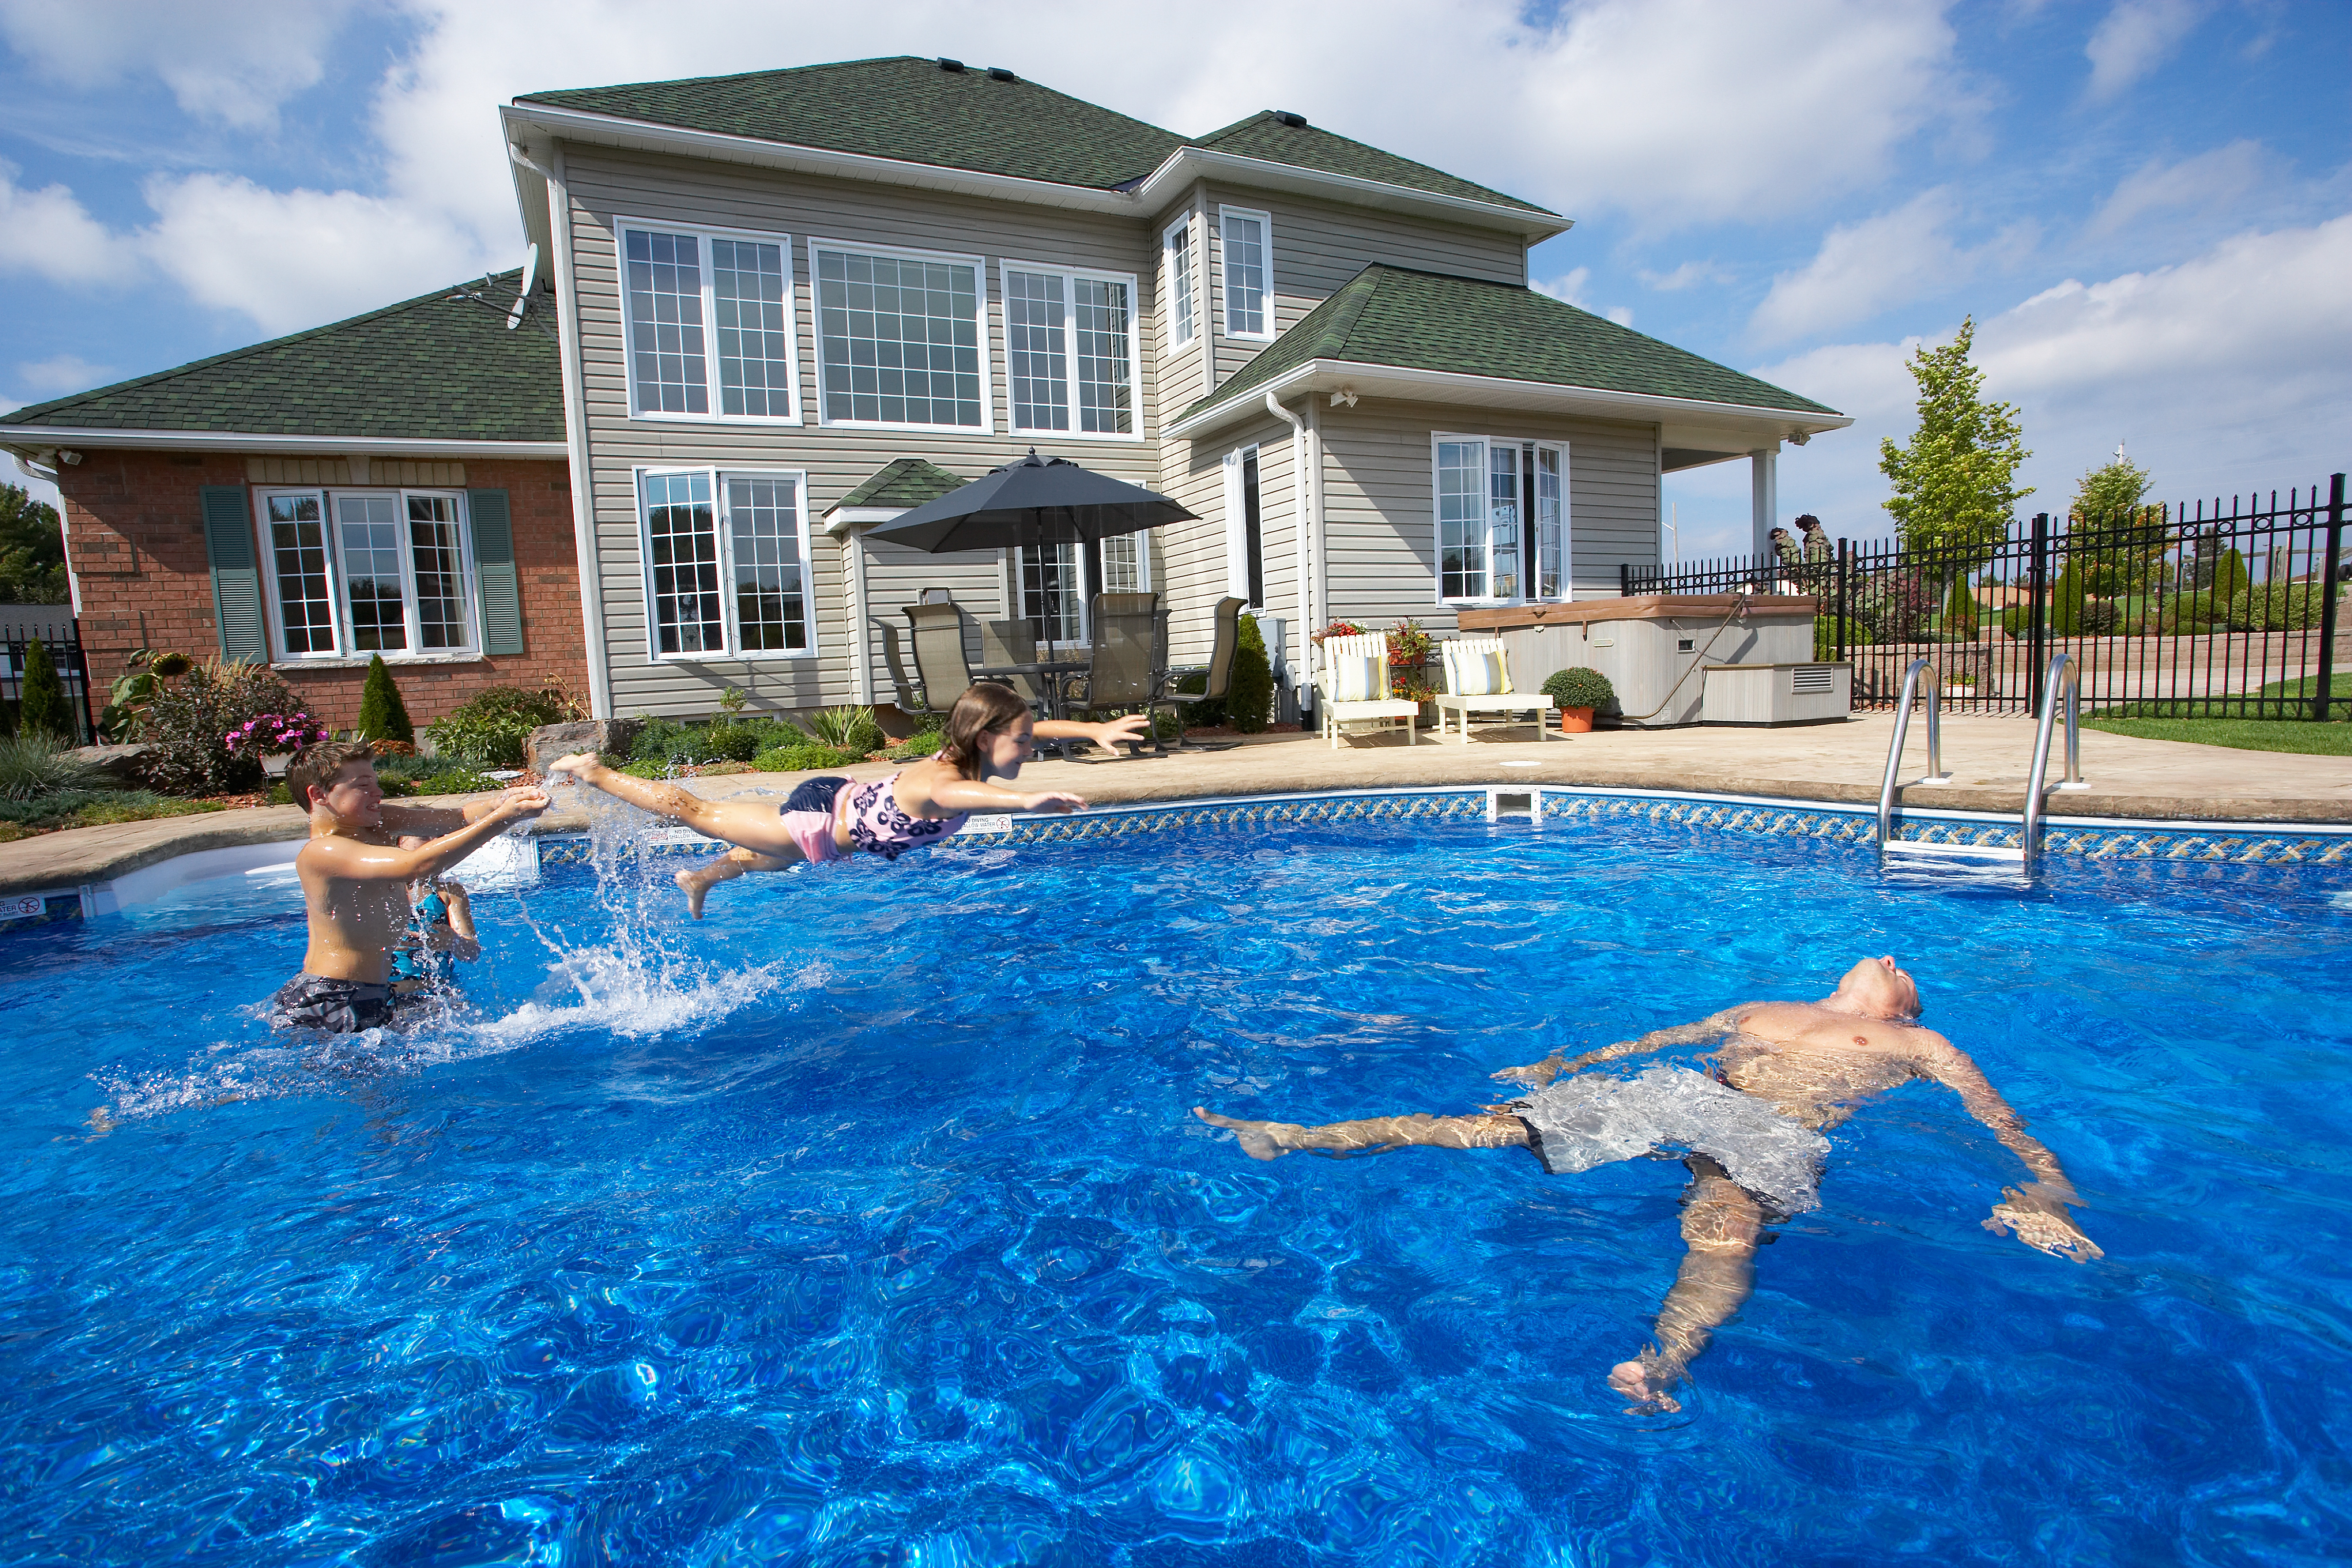 Swimming Pool Development Services : Our pool services in annapolis sunrise premiere